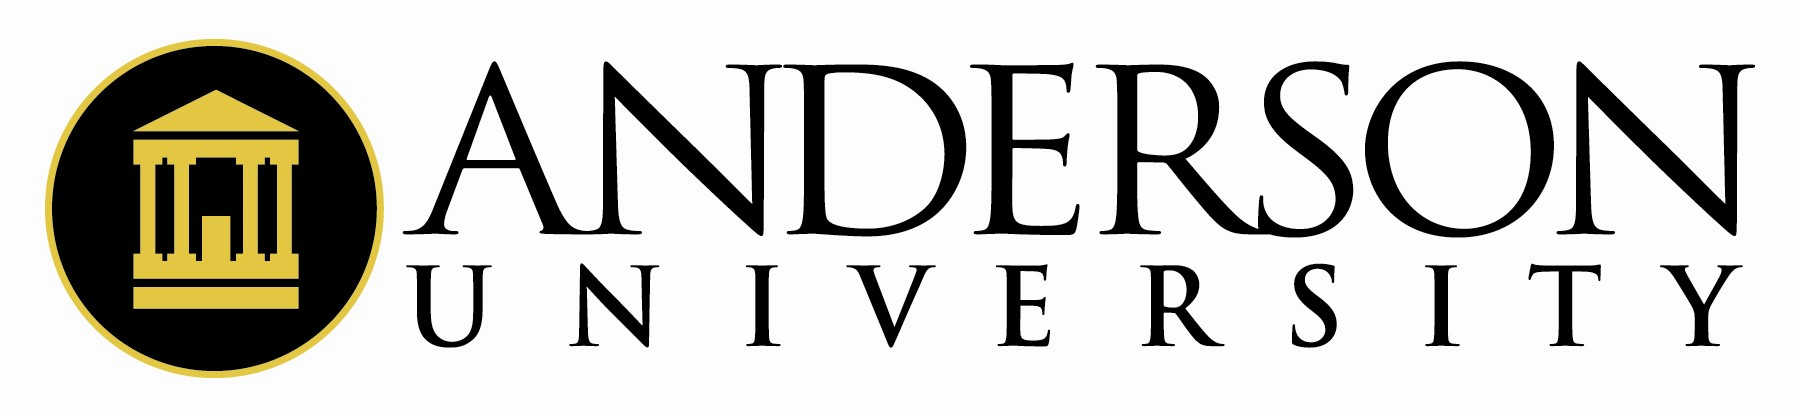 More about Anderson University